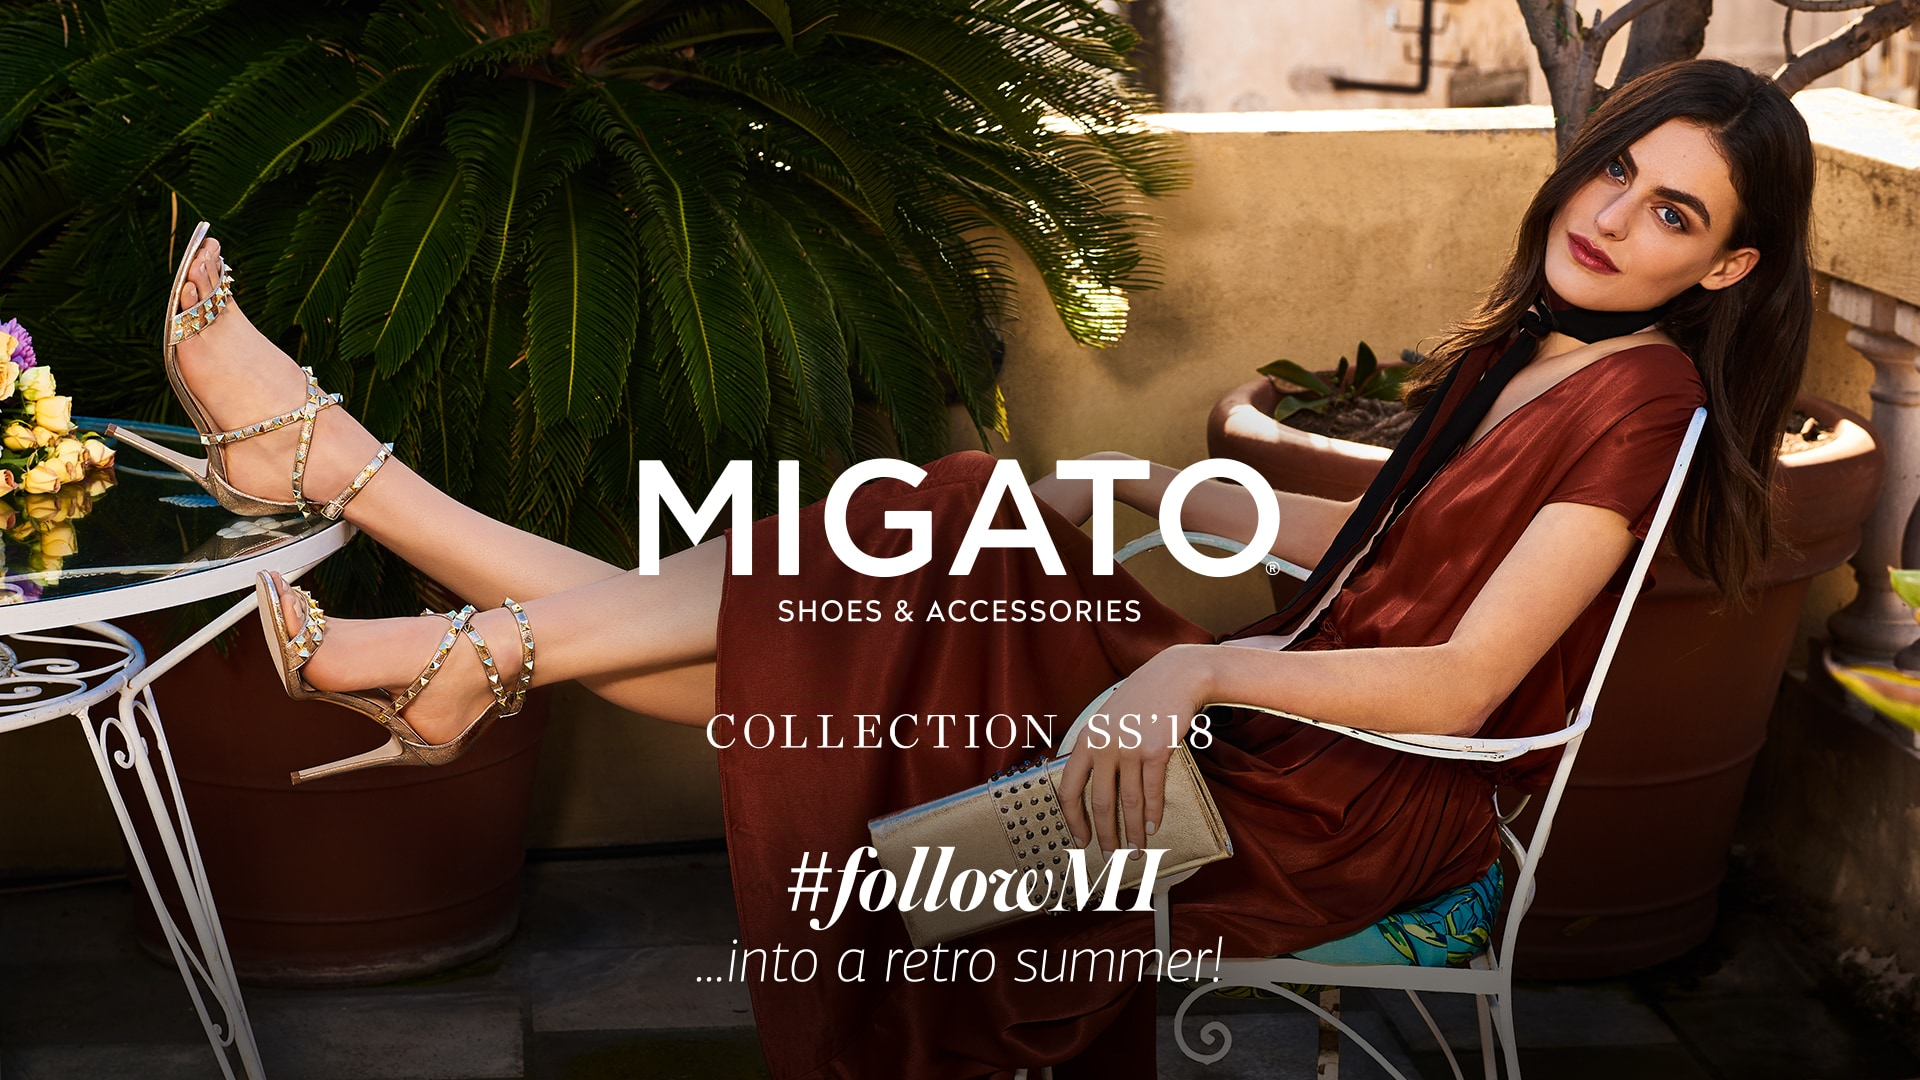 SS18 Campaign #followMI into a Retro Summer